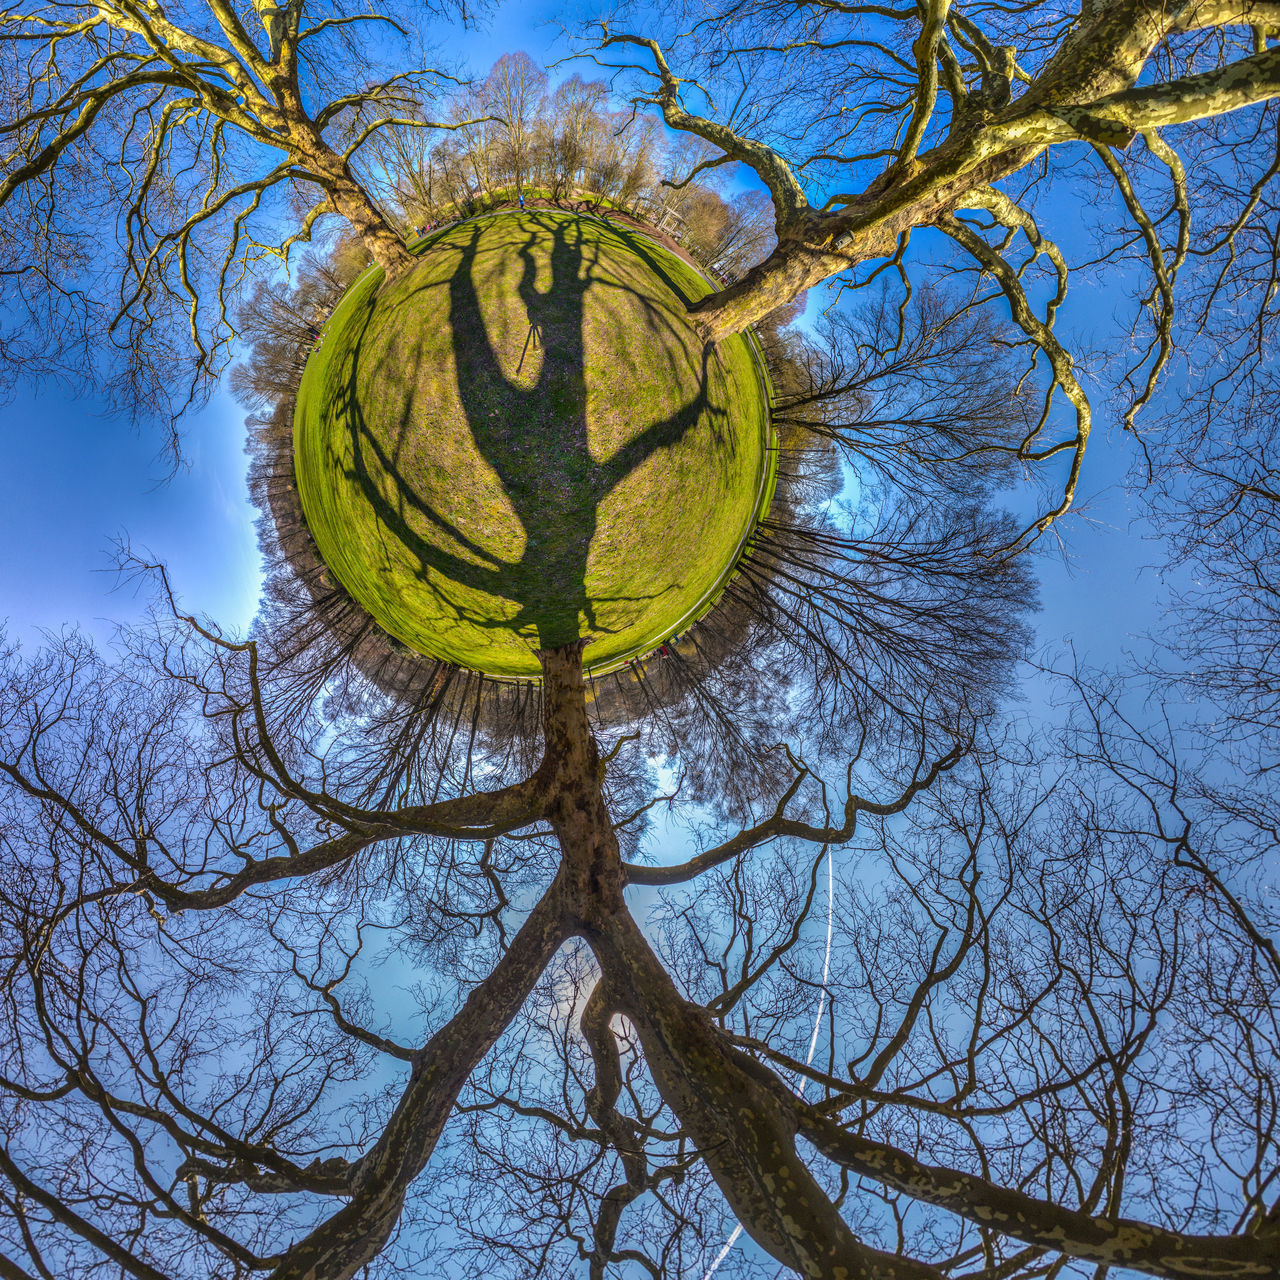 TREEOLOGY 360° Bare Tree Blue Sky Branch Branches Grass Green Color Growth HDR K-Town Kaiserslautern Kugelpanorama Light And Shadow Little Planet Nature Outdoors Panorama Park Sky Spherical Panorama Tiny Planet Tree Tree Trees Volkspark